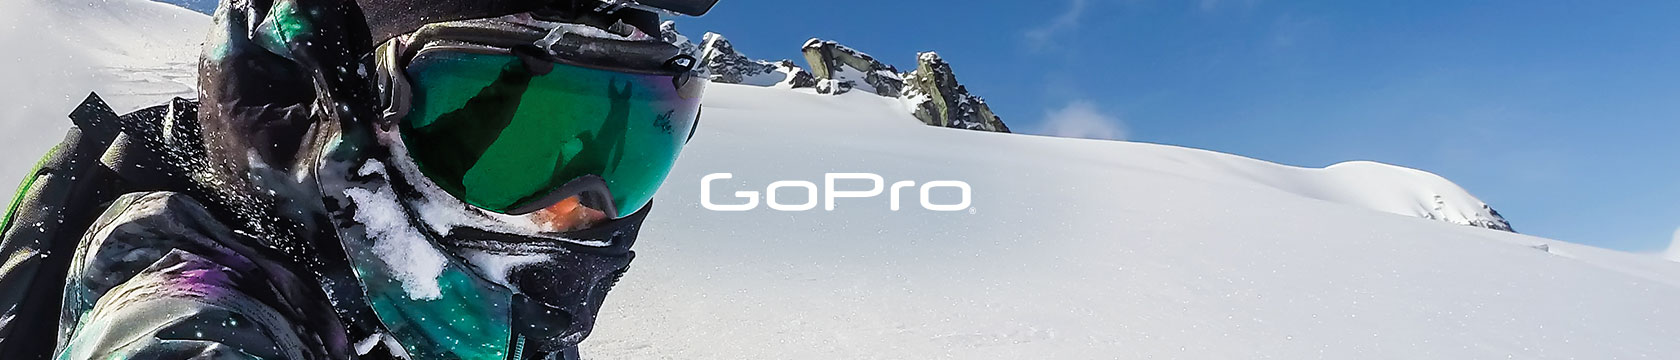 Person in snow mountains, using GoPro gear.